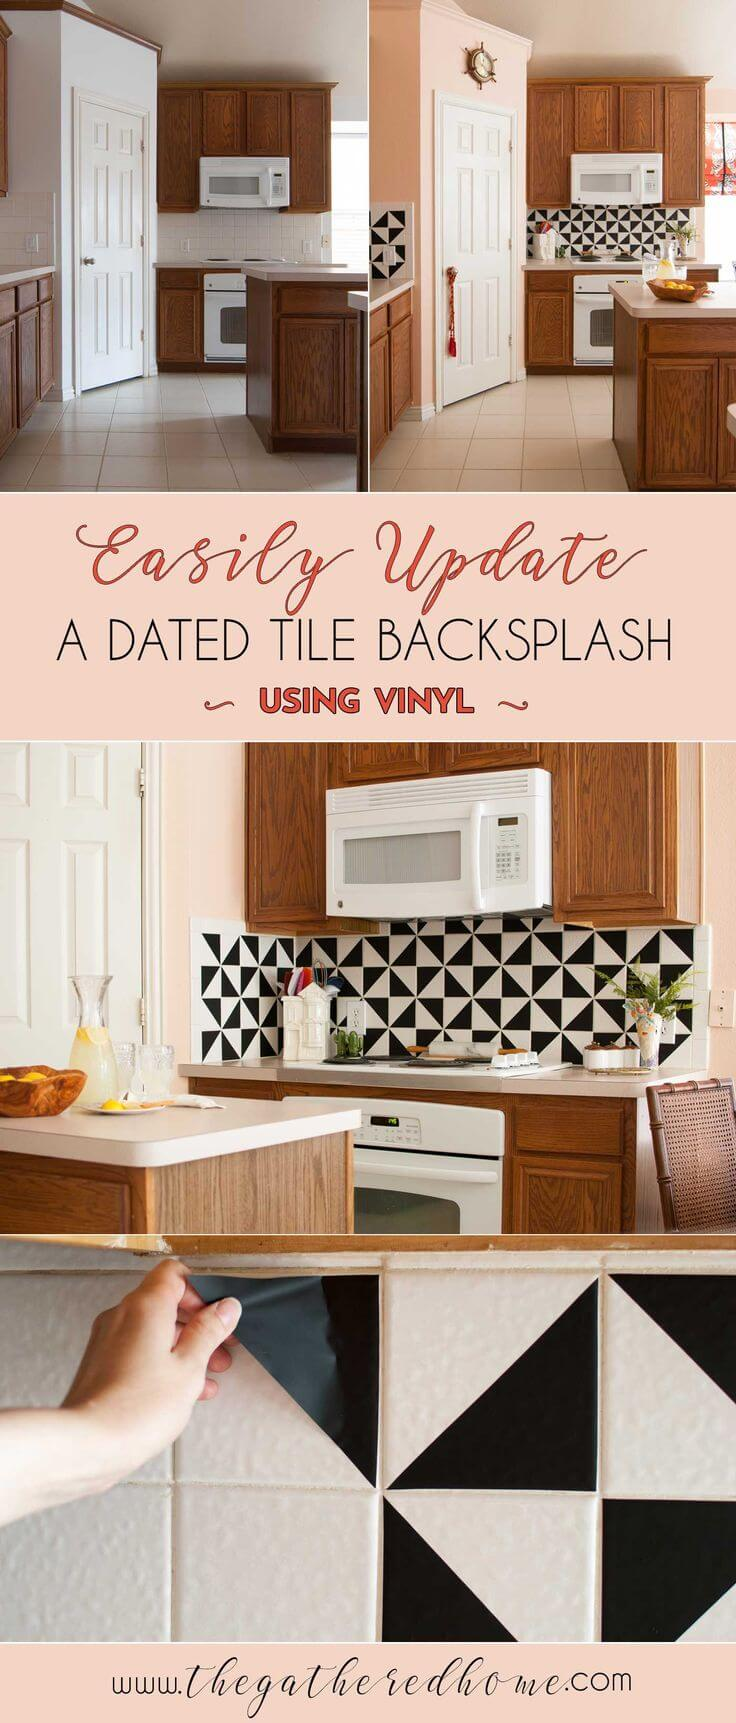 24 Low Cost Diy Kitchen Backsplash Ideas And Tutorials Autos Post